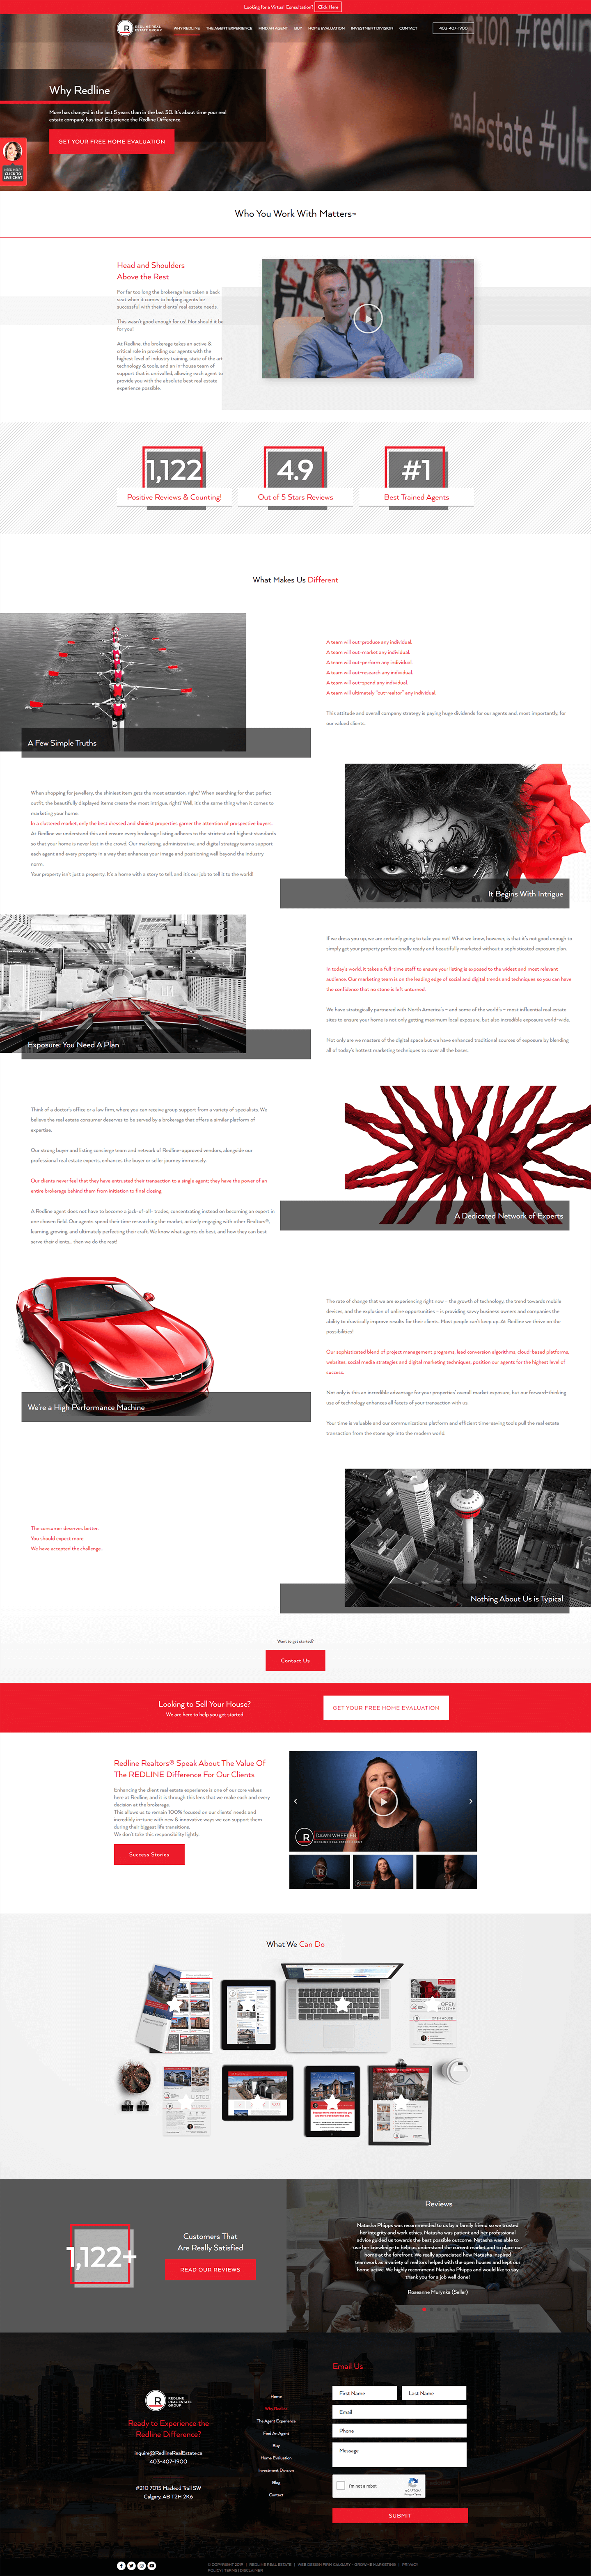 redline real estates about page